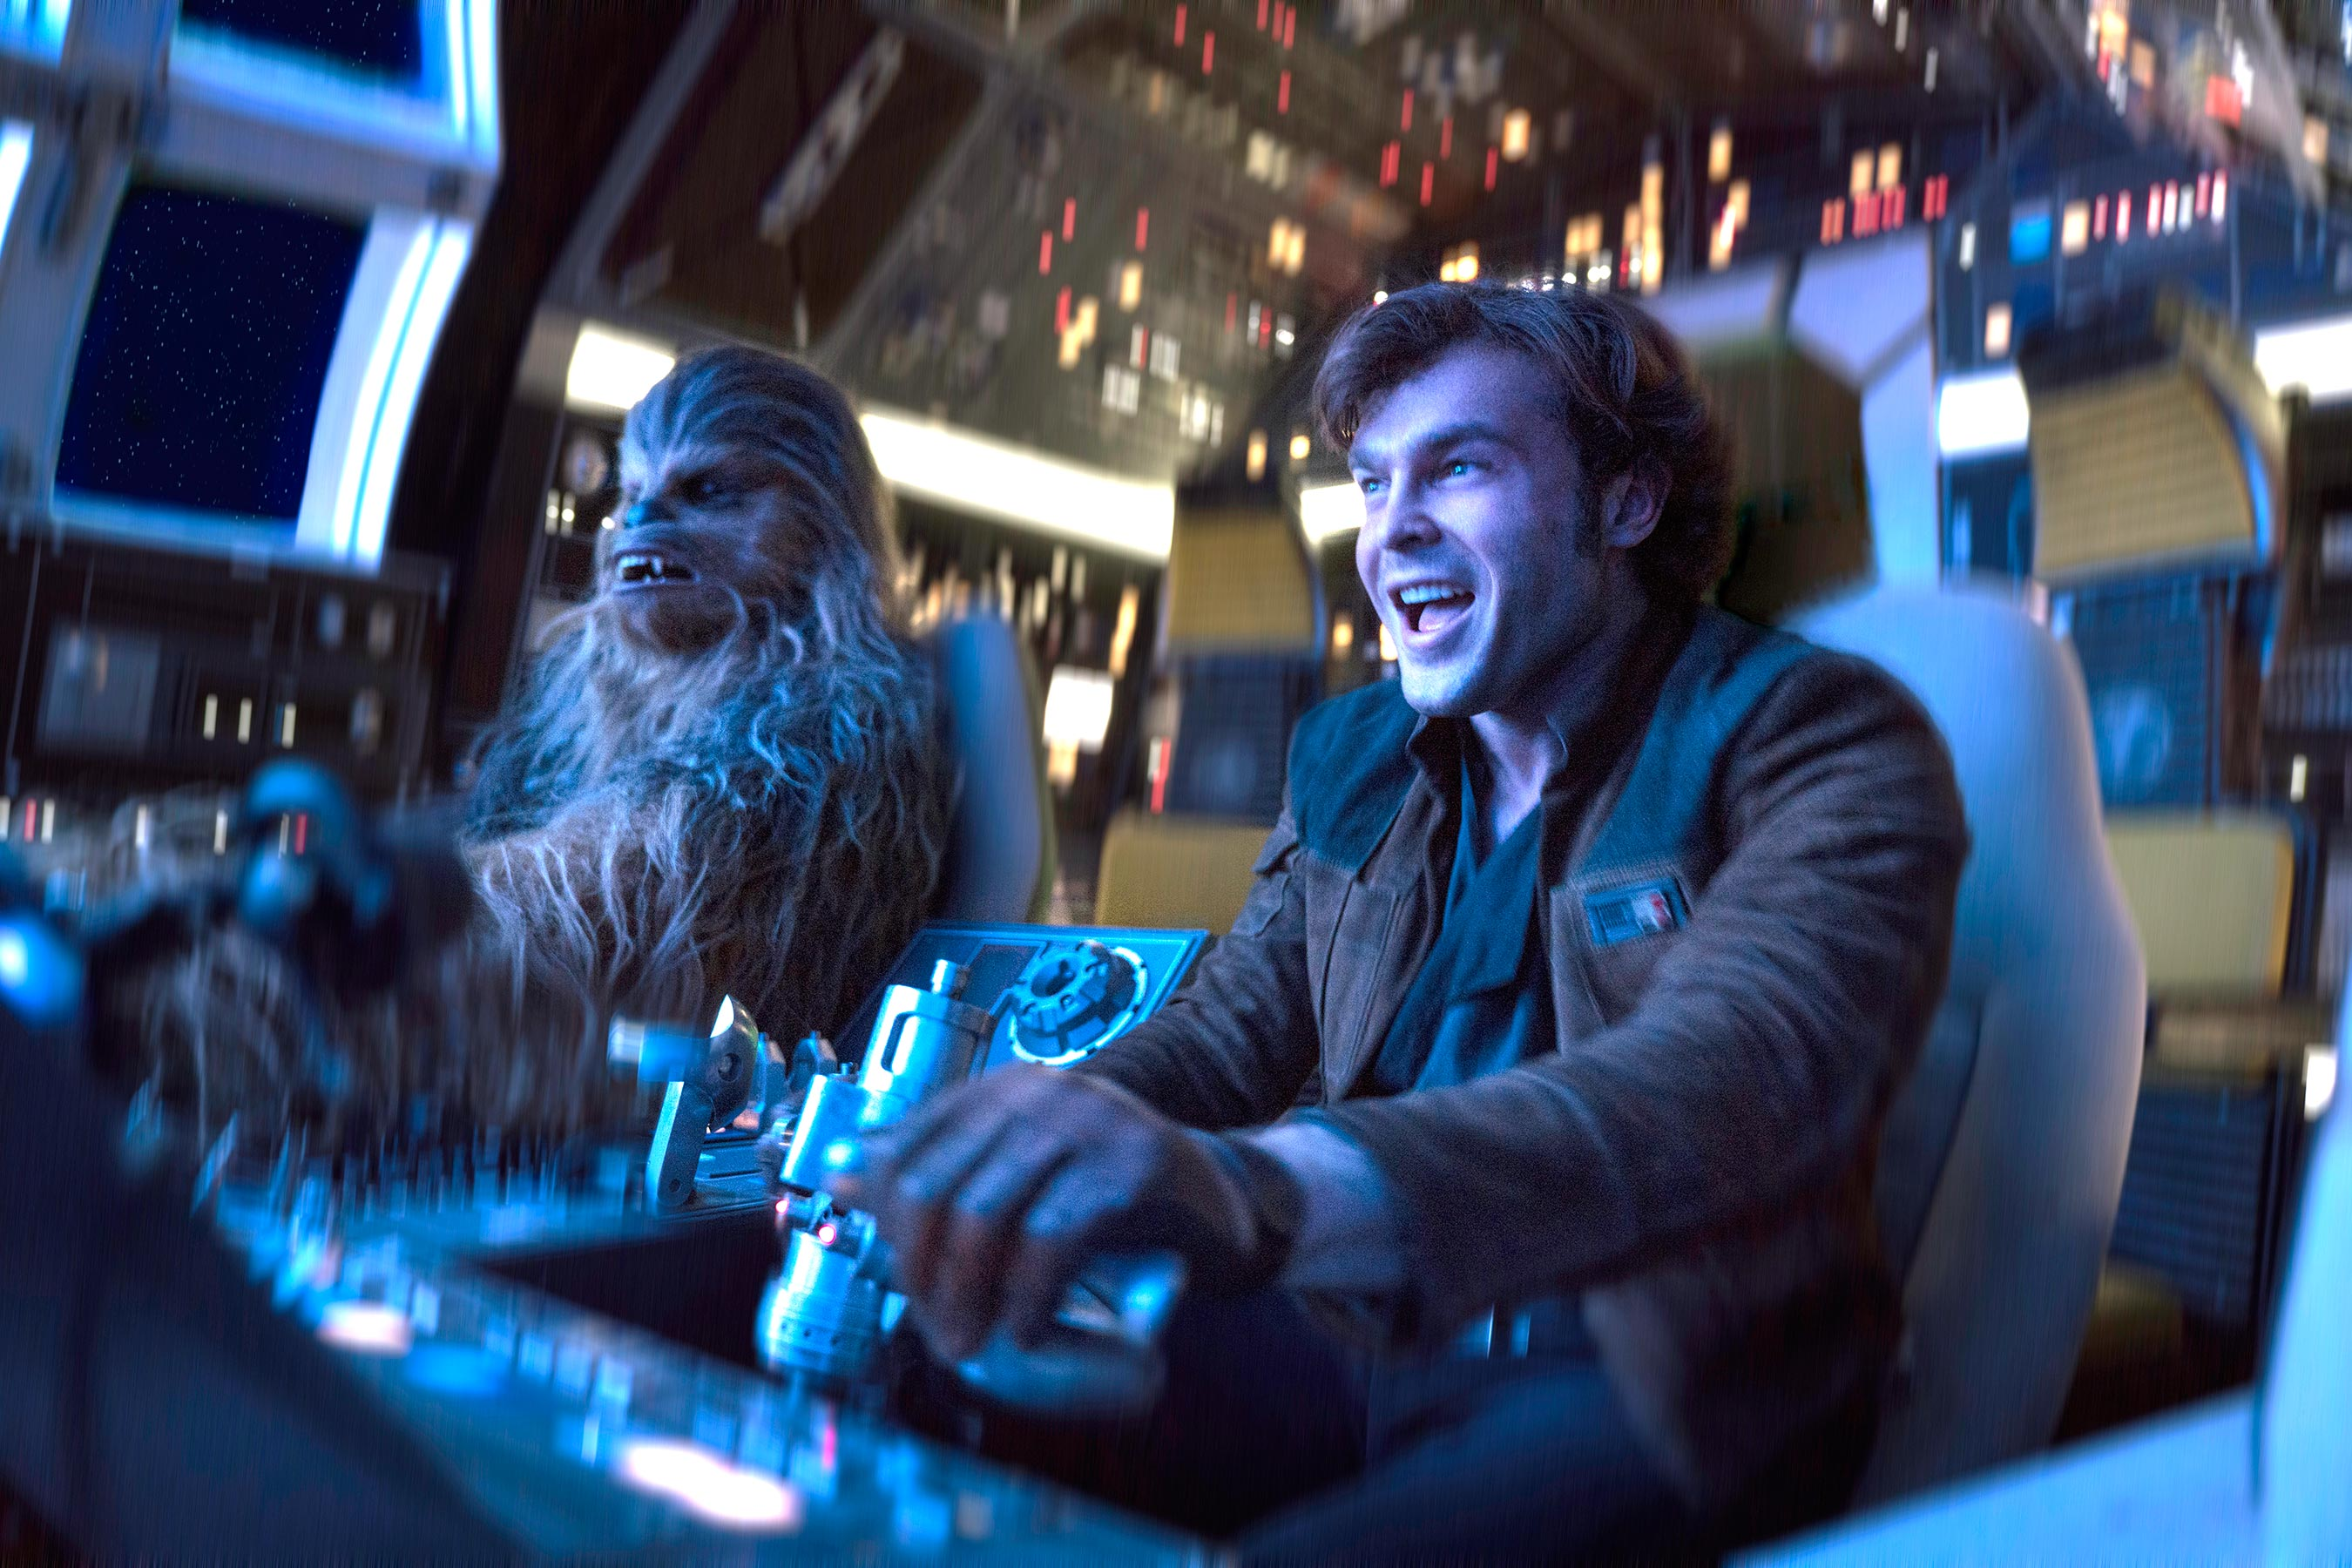 Solo: A Star Wars Story Inspired By Heat and The Big Lebowski, Releases New Poster